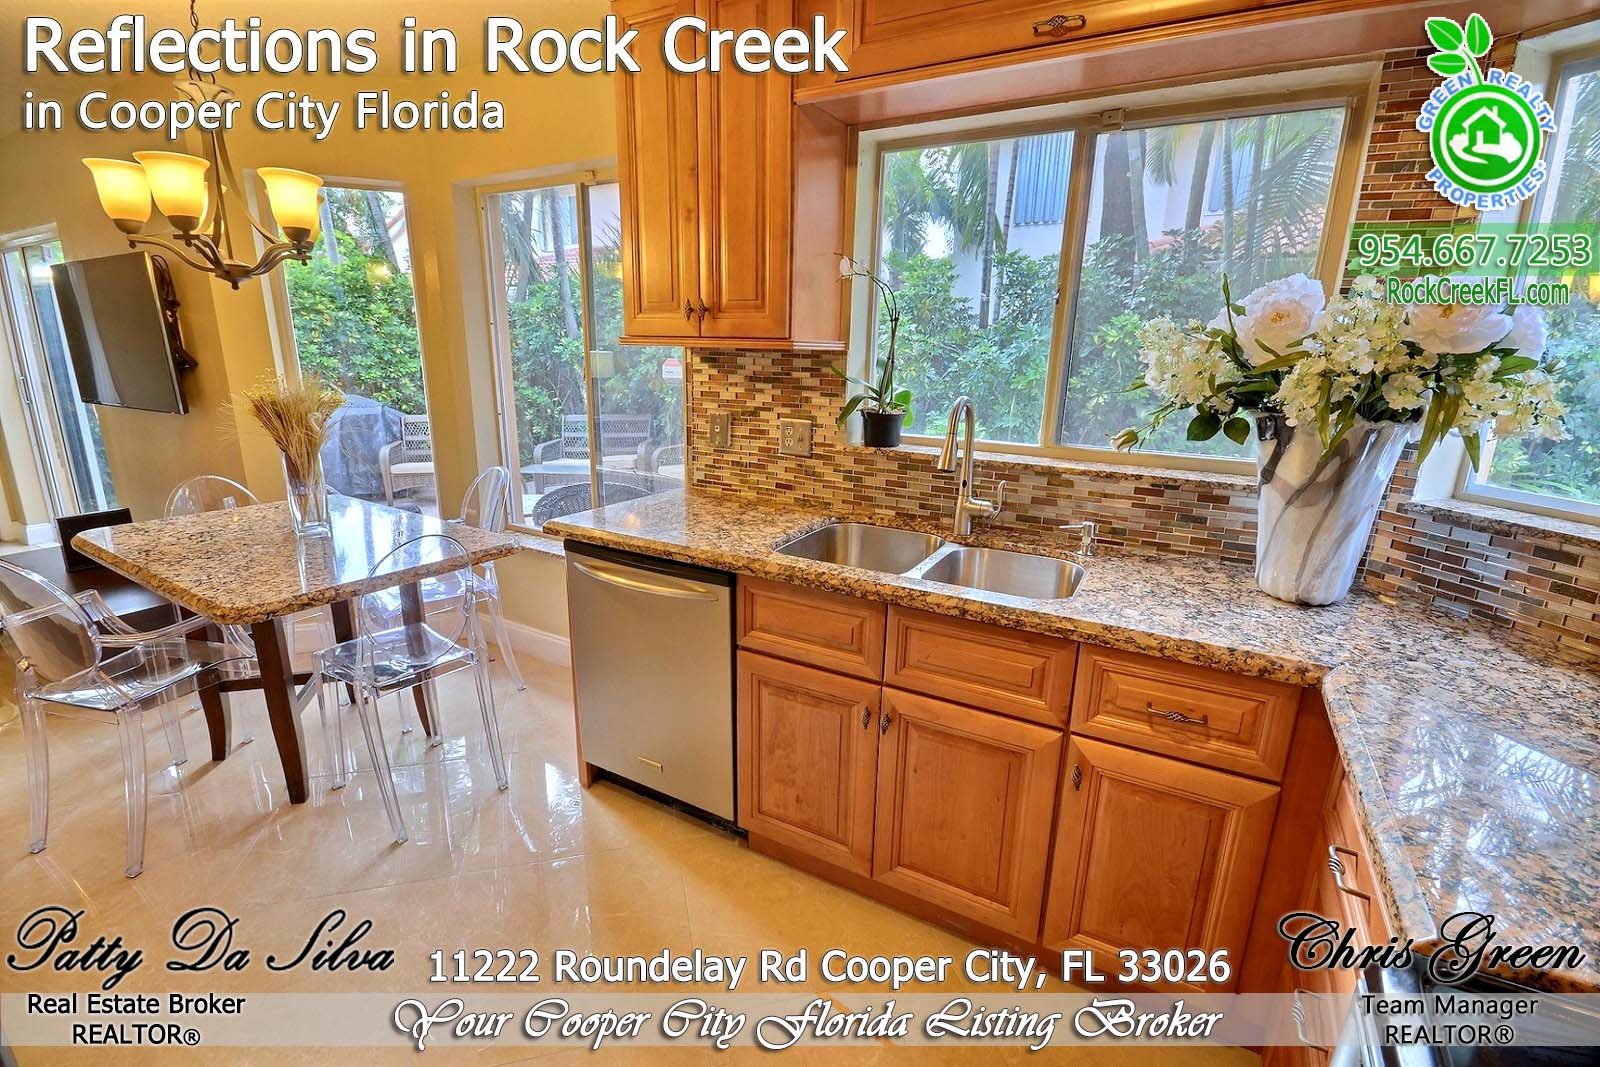 Pattty Da Silva SELLS Homes in Reflections Cooper City